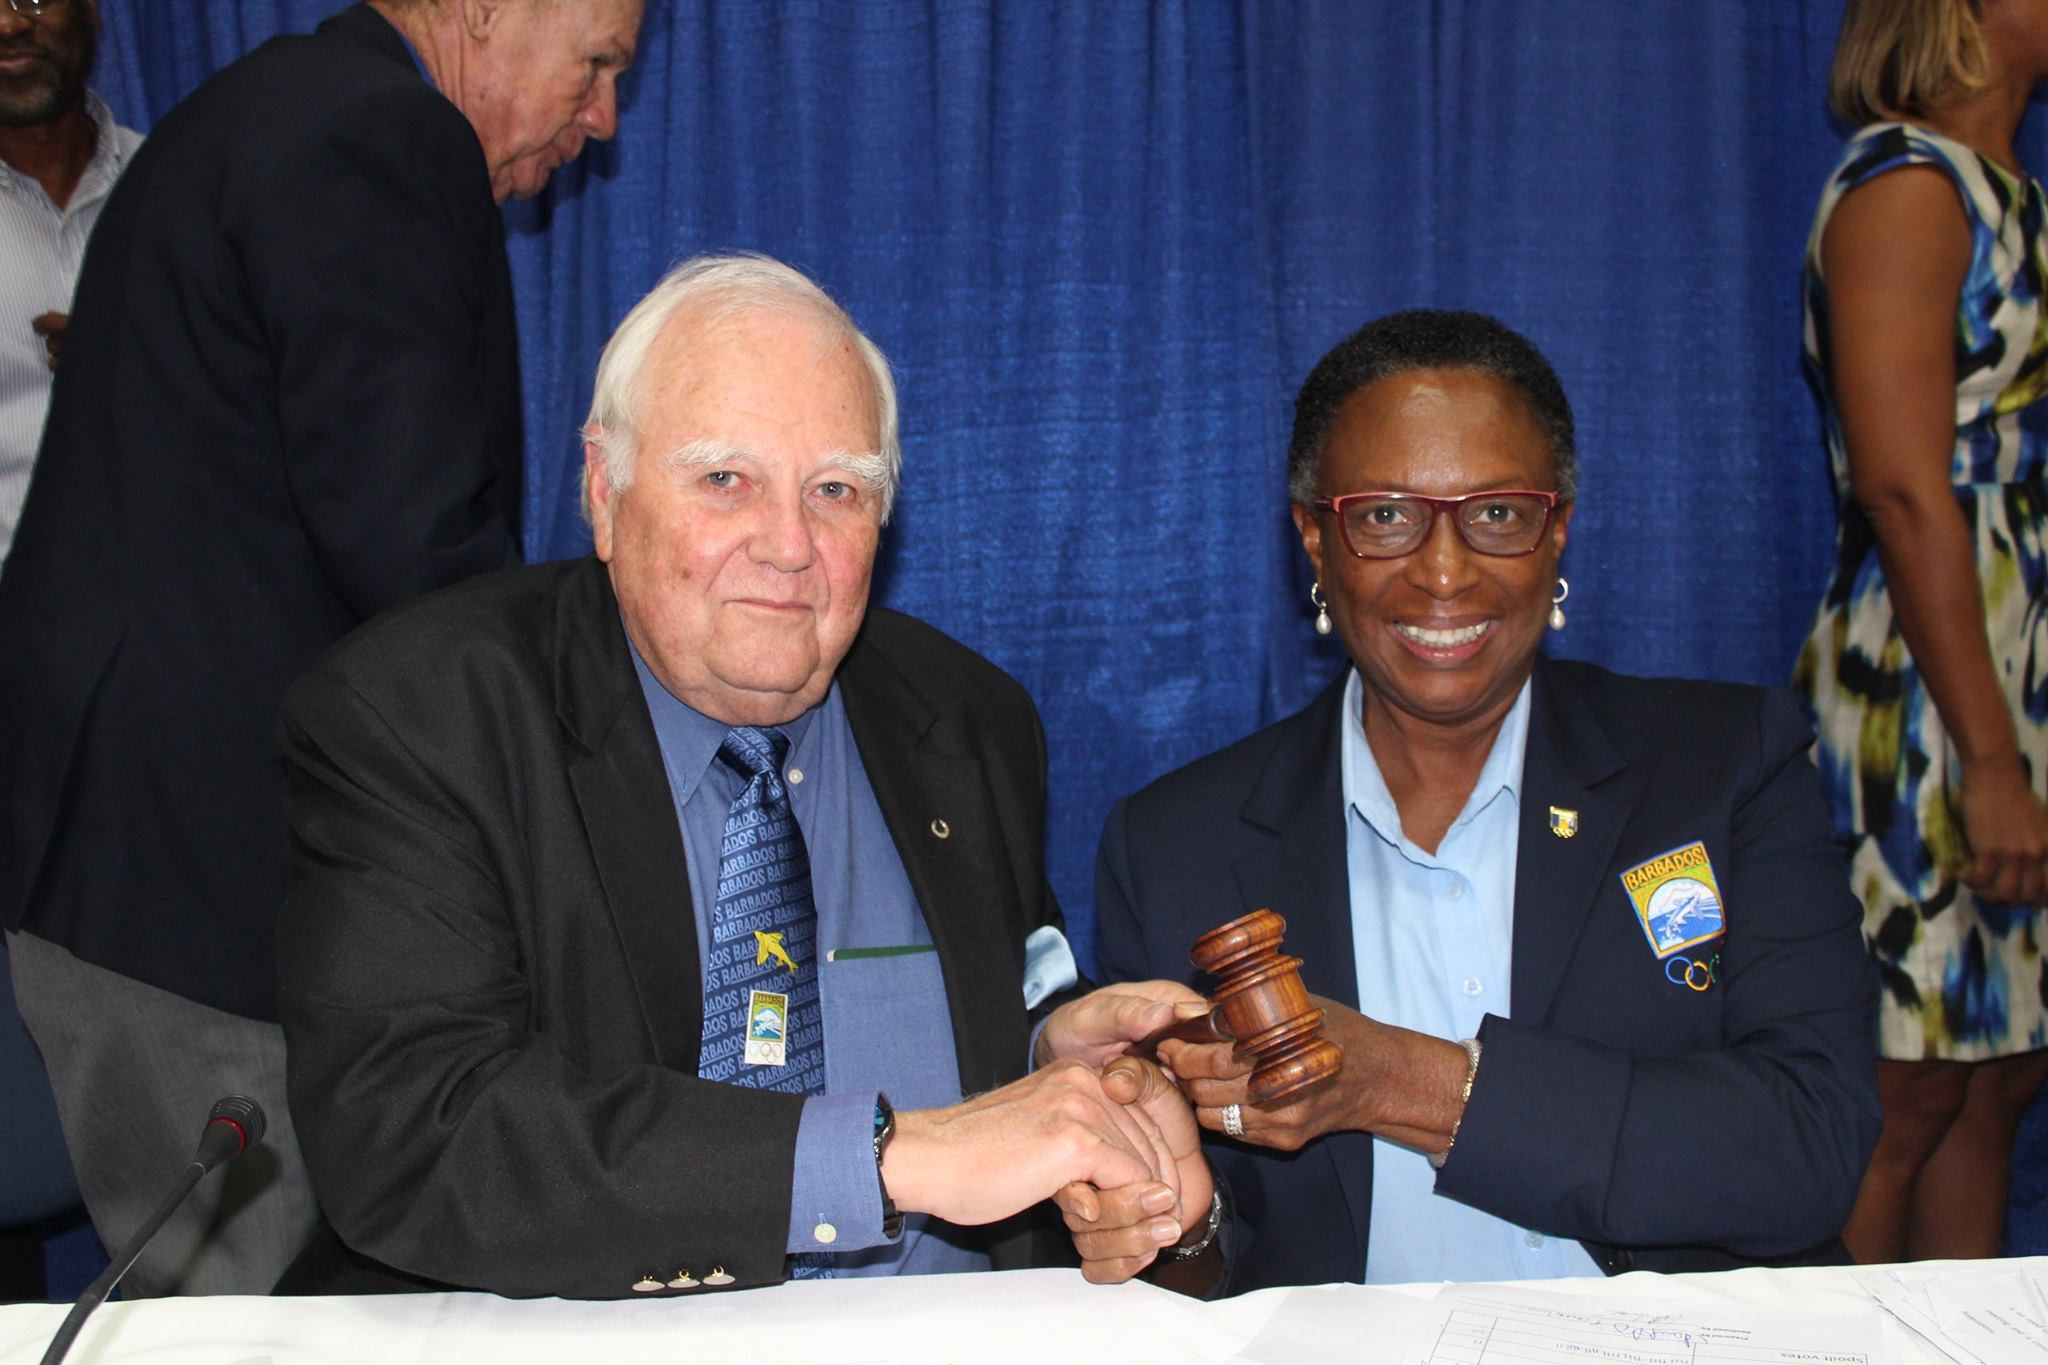 Osborne elected to replace Stoute as Barbados Olympic Association President